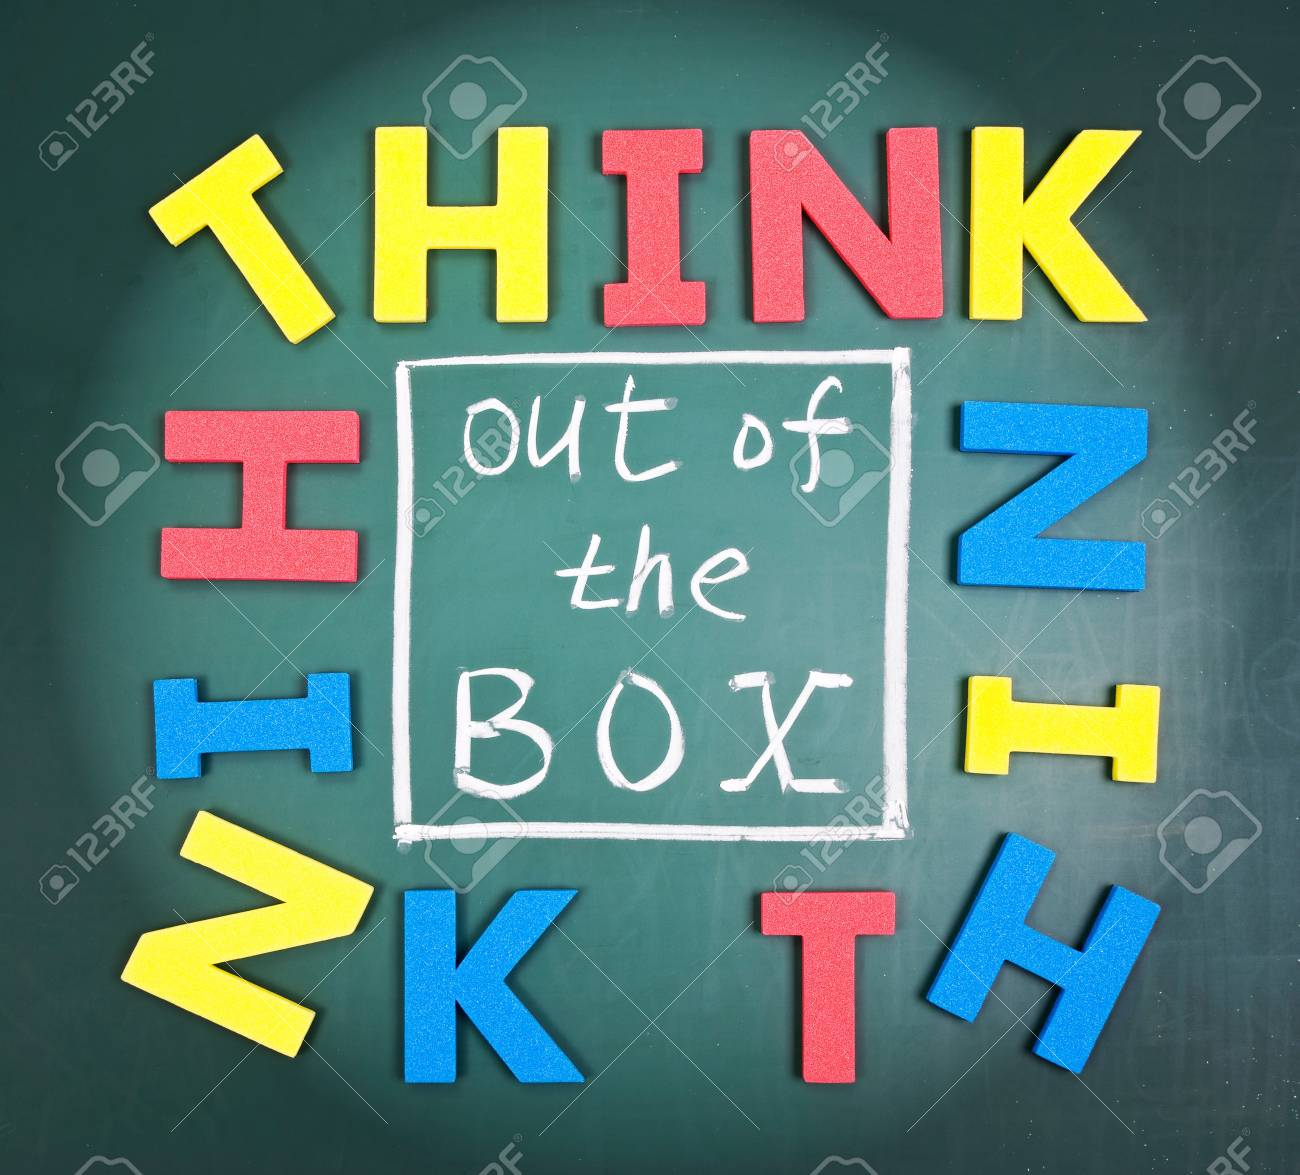 Think out of box, colorful words on blackboard. Stock Photo - 9049677